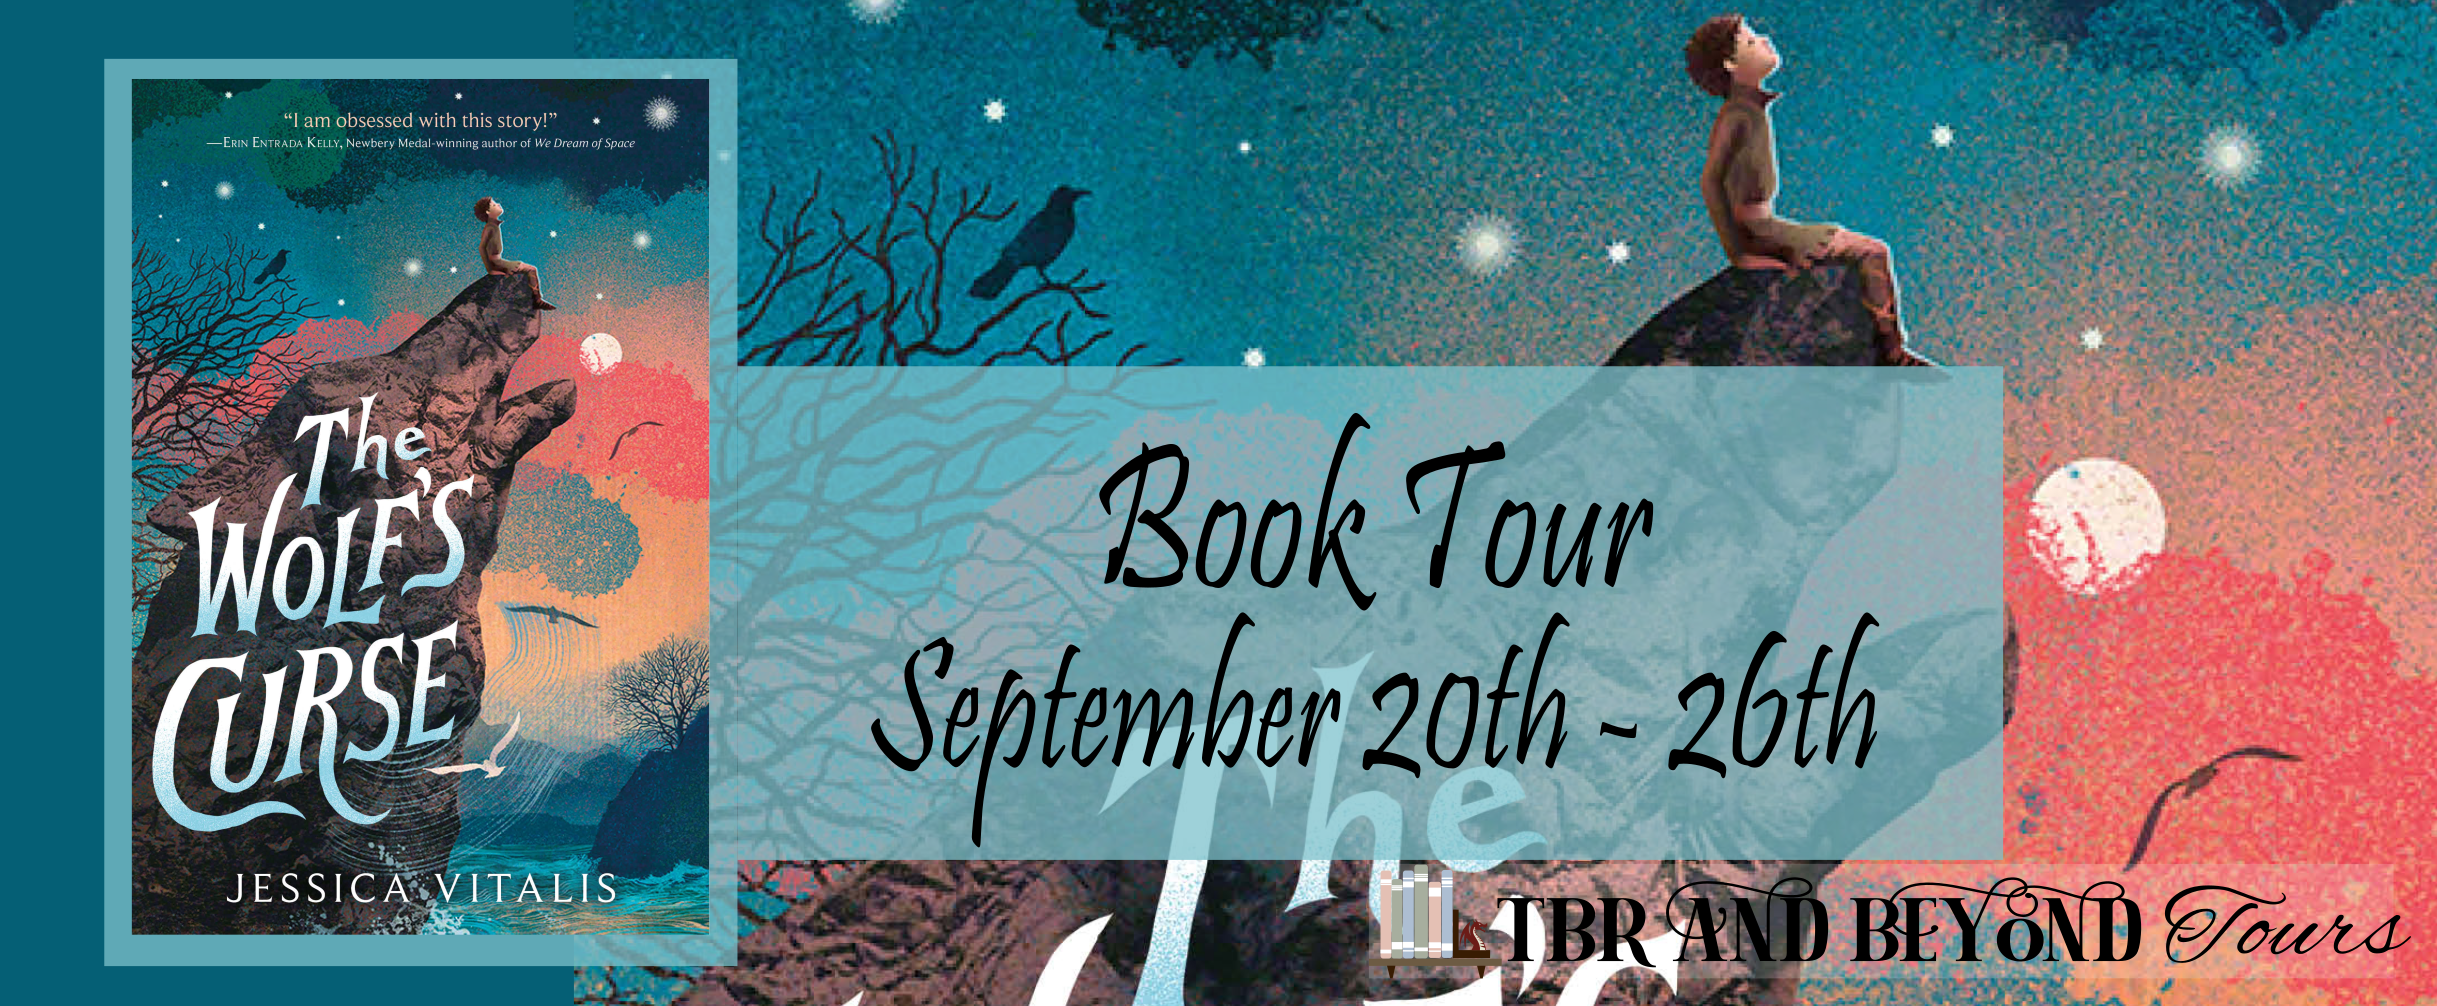 Blog Tour: The Wolf's Curse by Jessica Vitalis (Interview!)